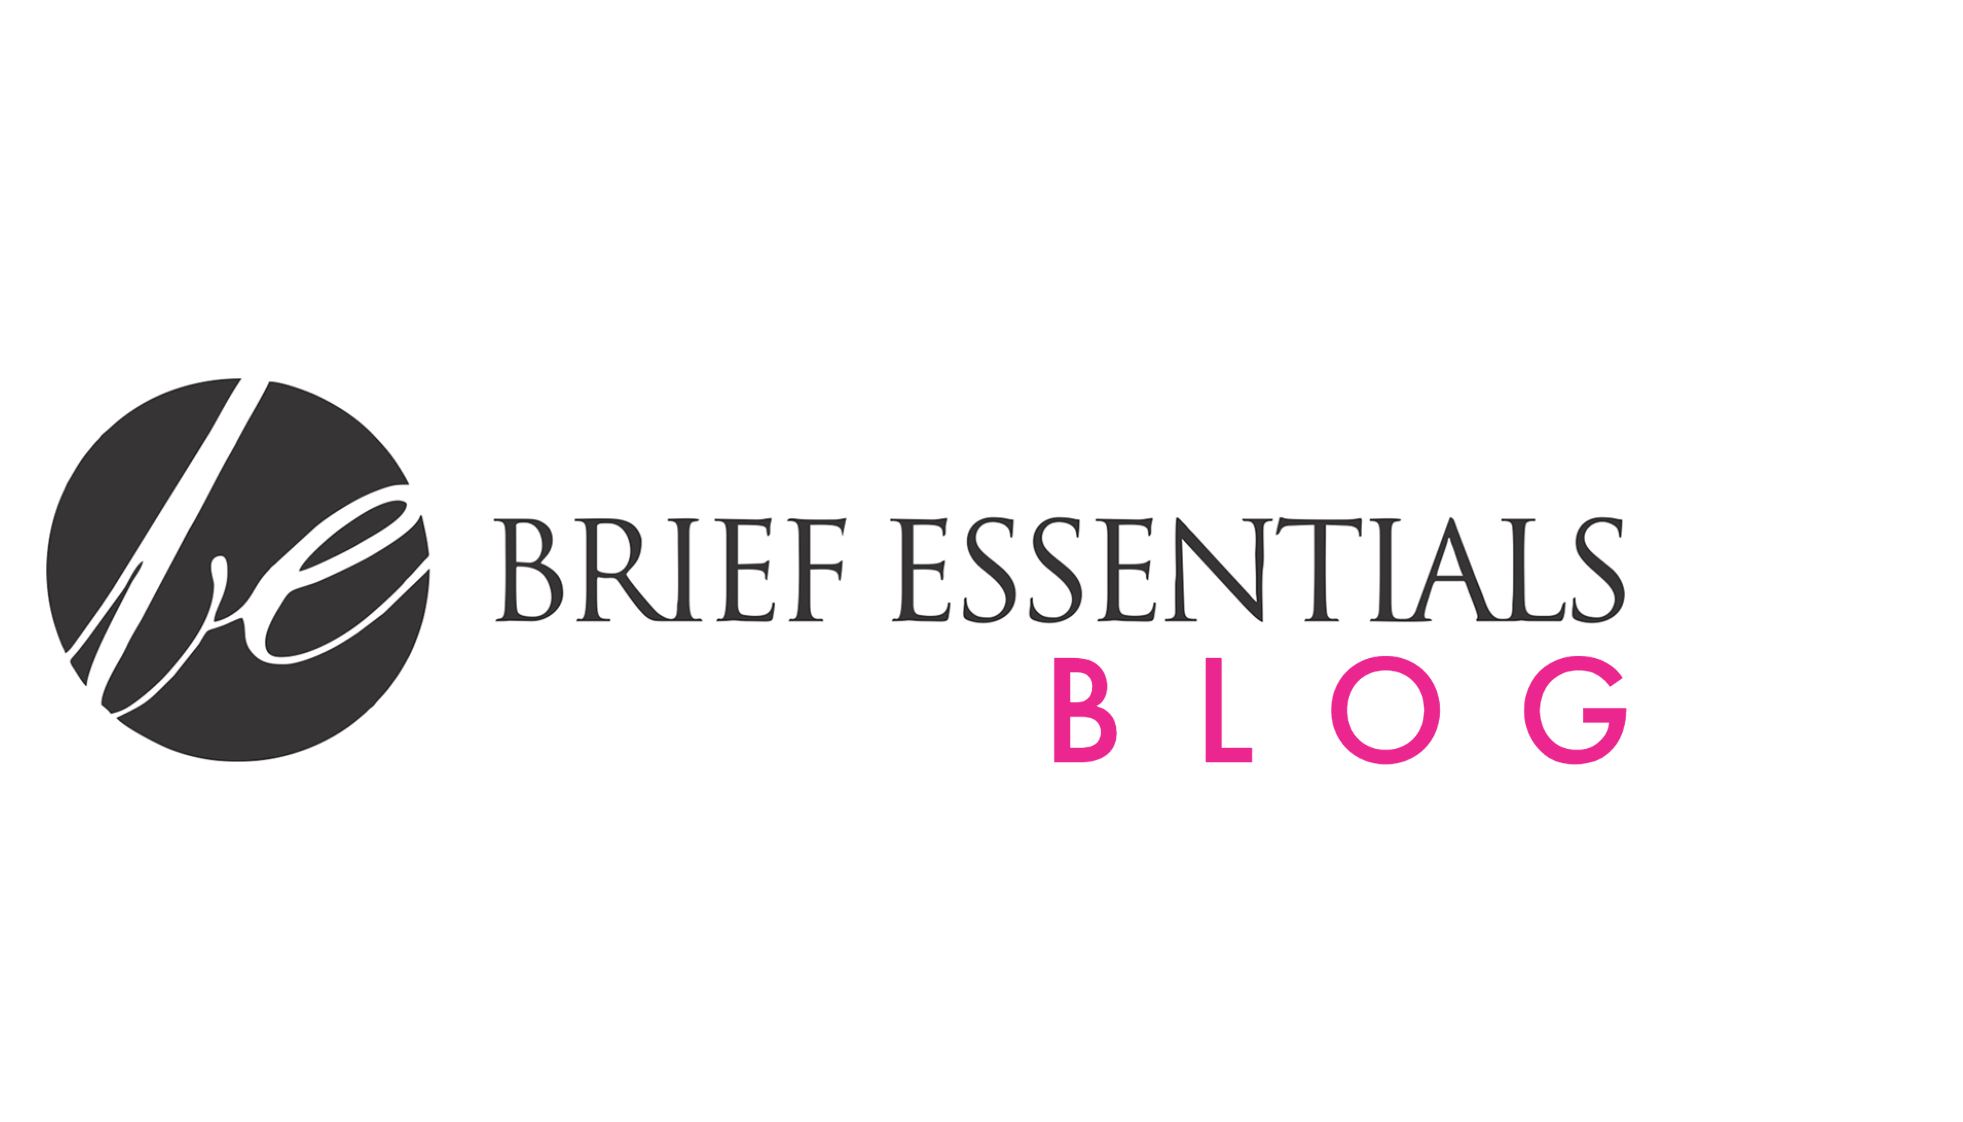 The BE Blog